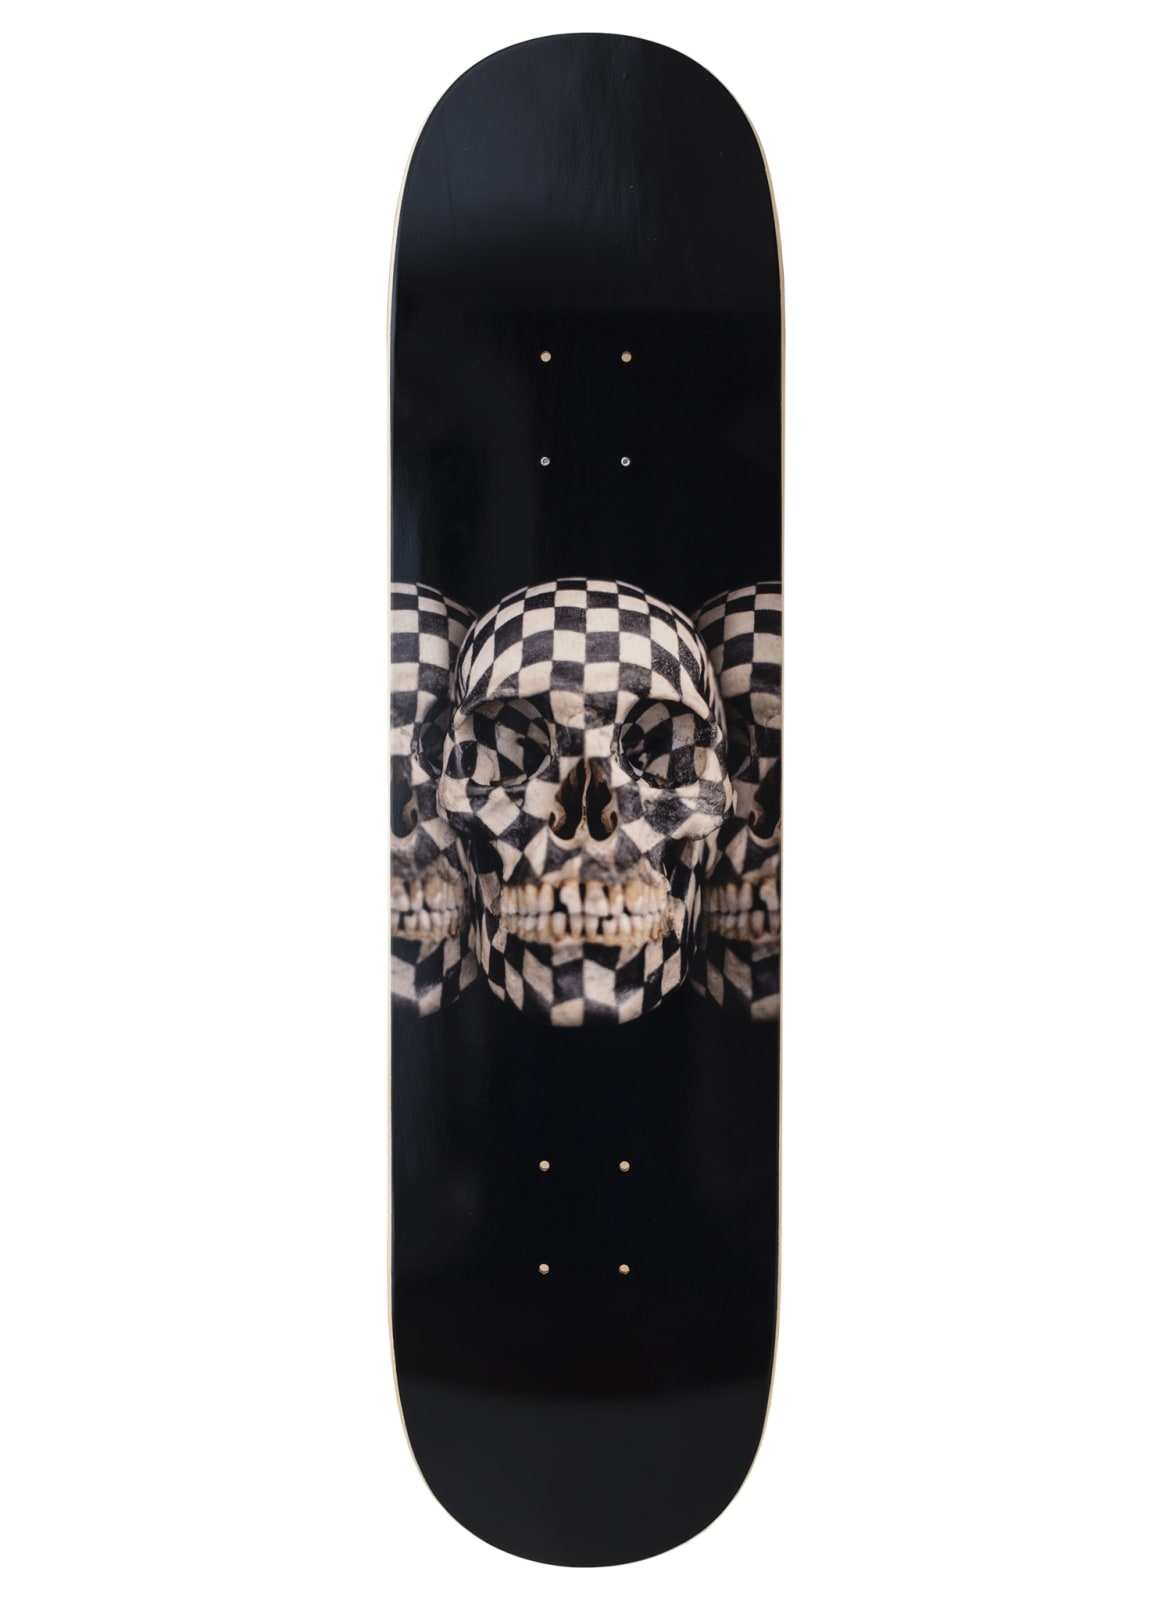 A board of a black skateboard designed with a set of checkered skulls in the center.